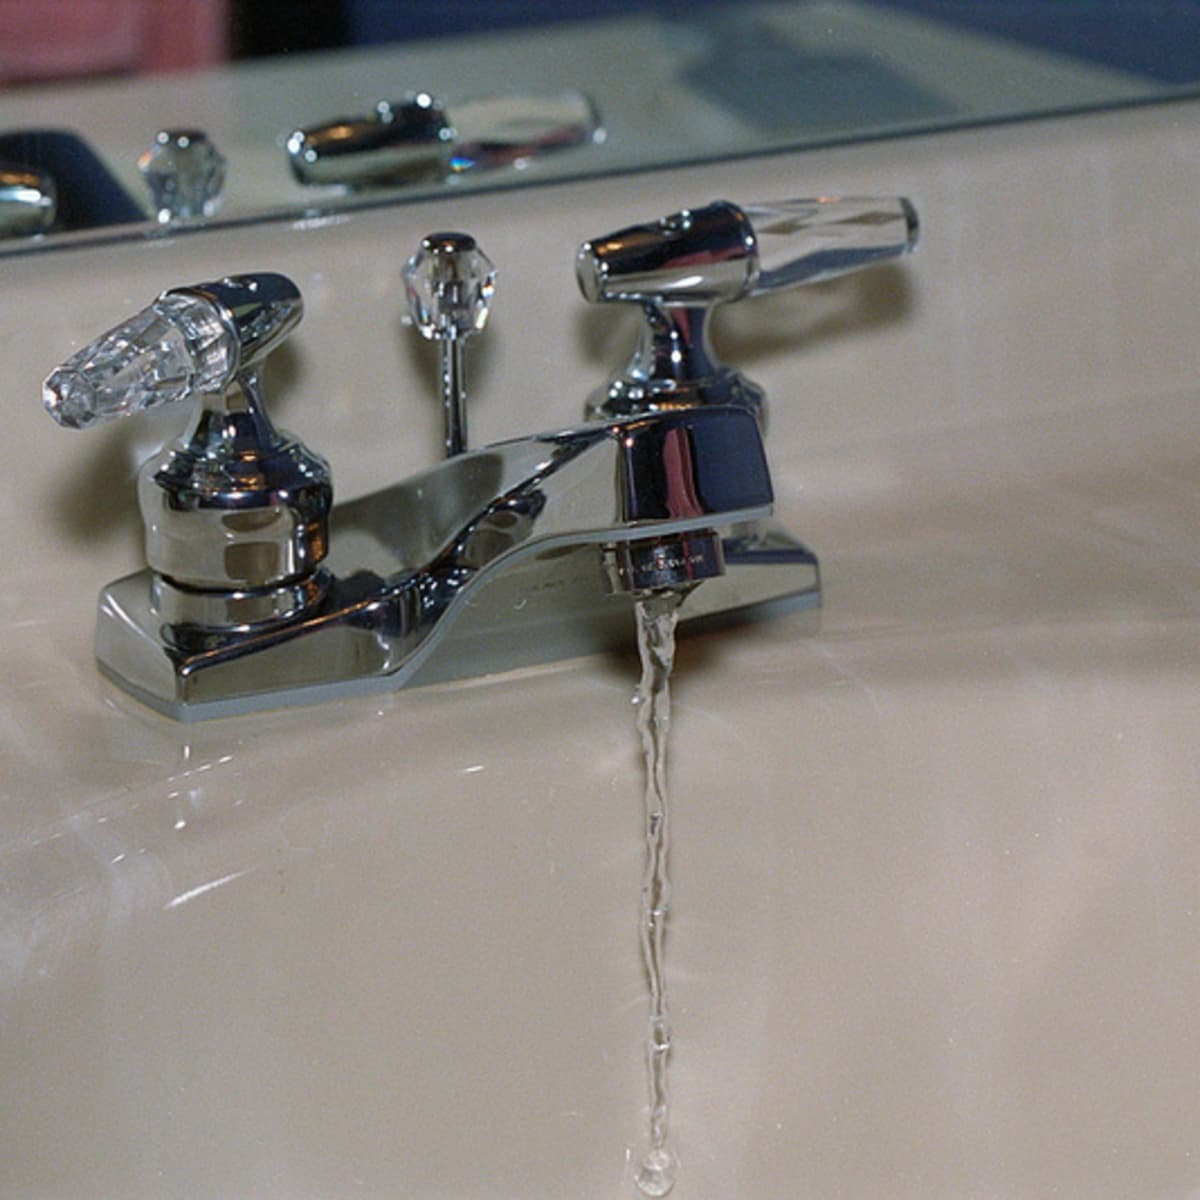 clear a blockage in a sink faucet